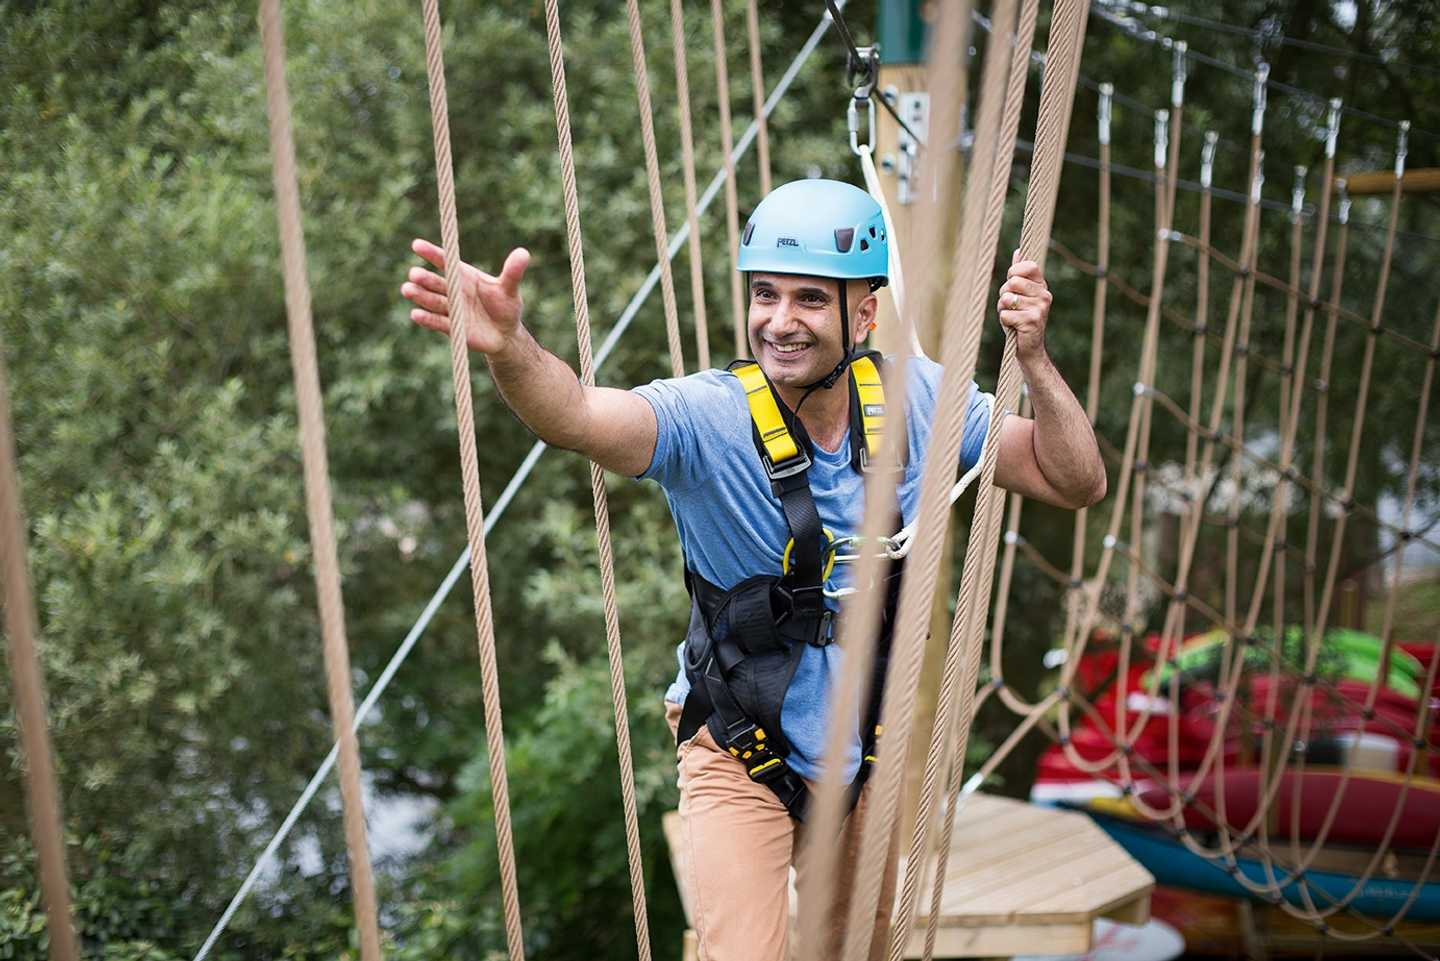 A girl on the Aerial Adventure course